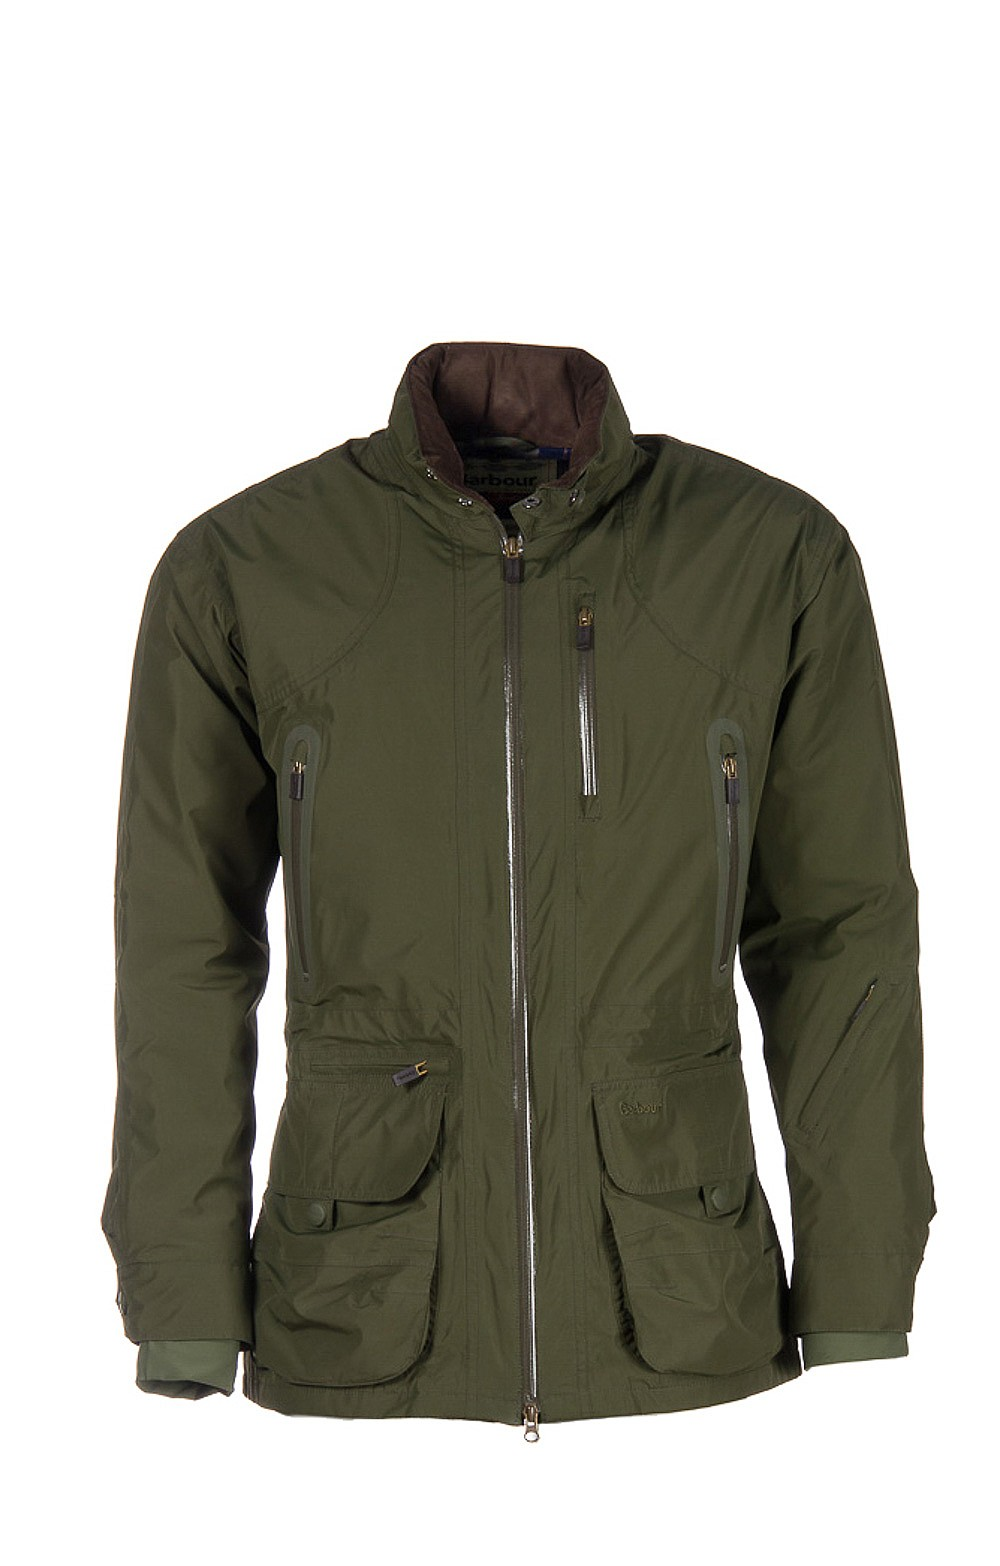 barbour men's waterproof jackets